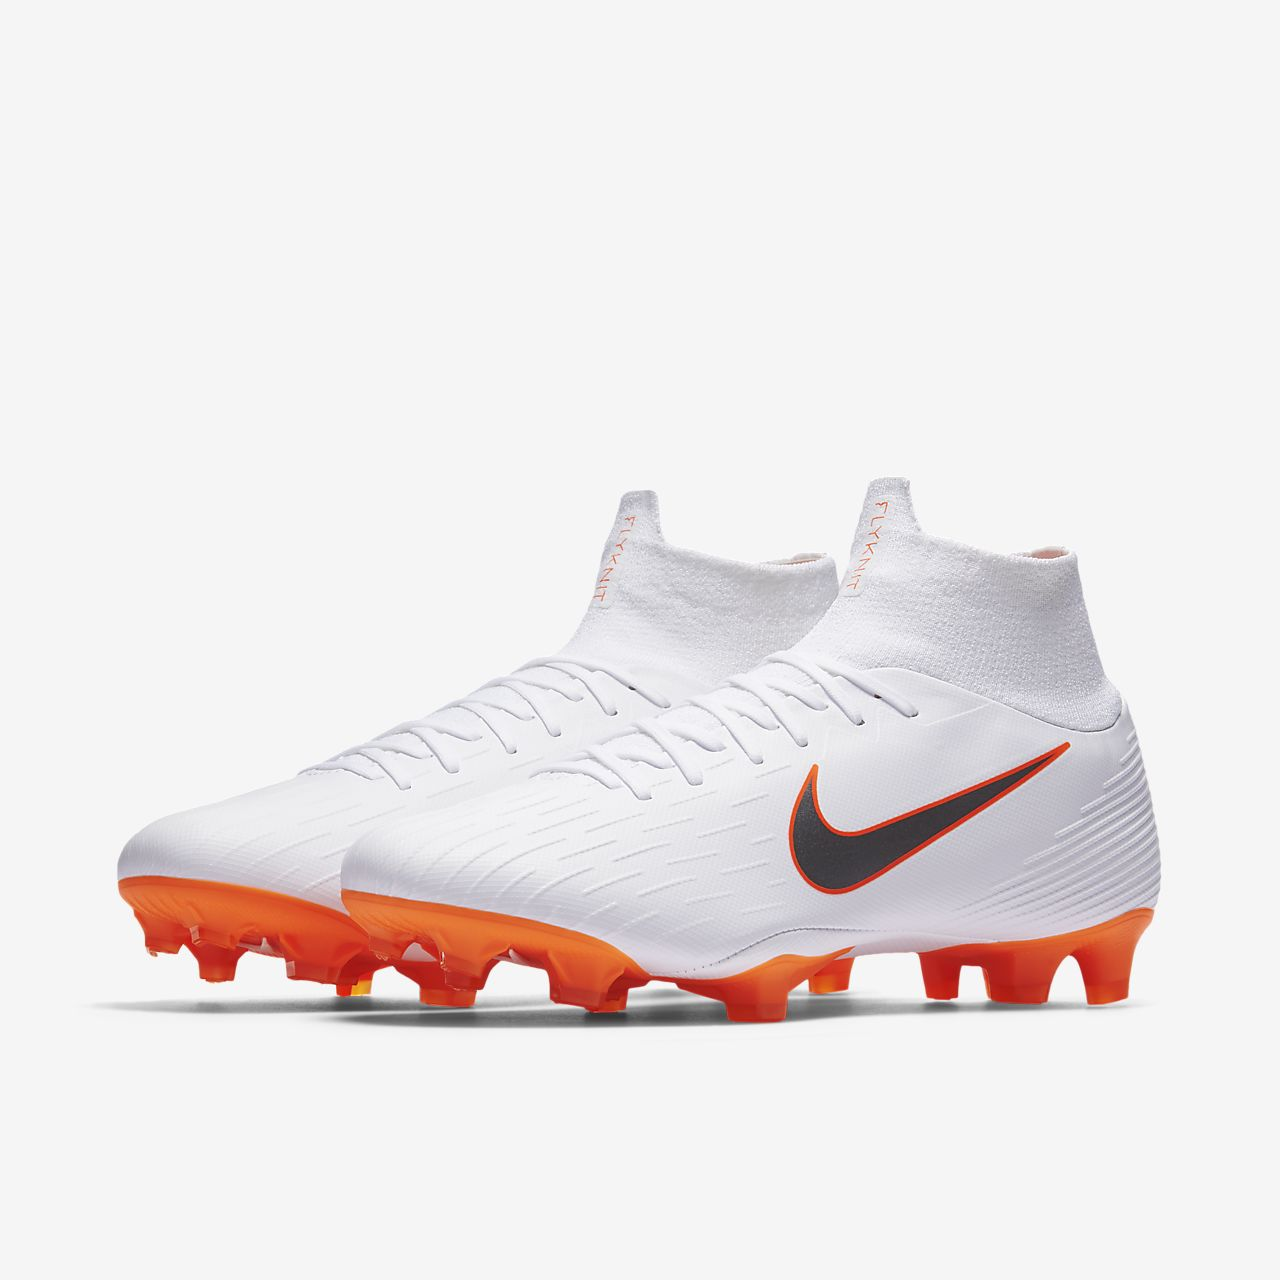 Nike mercurial superfly vi pro just do it firm ground football boot nike mercurial superfly vi pro just do it firm ground football boot voltagebd Gallery